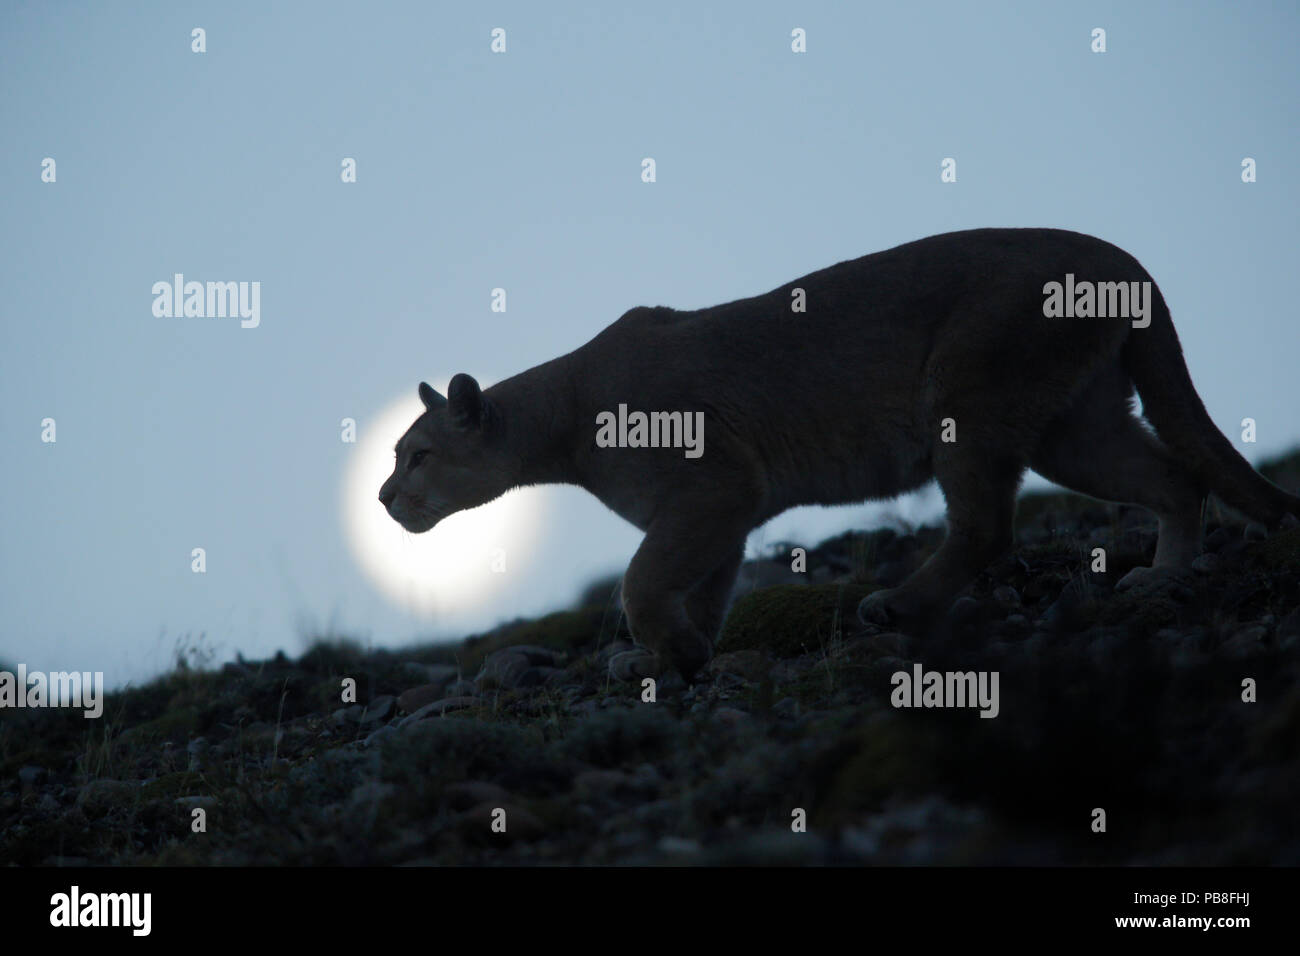 Mountain lion (Puma concolor) silhouetted, Torres del Paine. Patagonia, Puerto Natales, Chile. - Stock Image